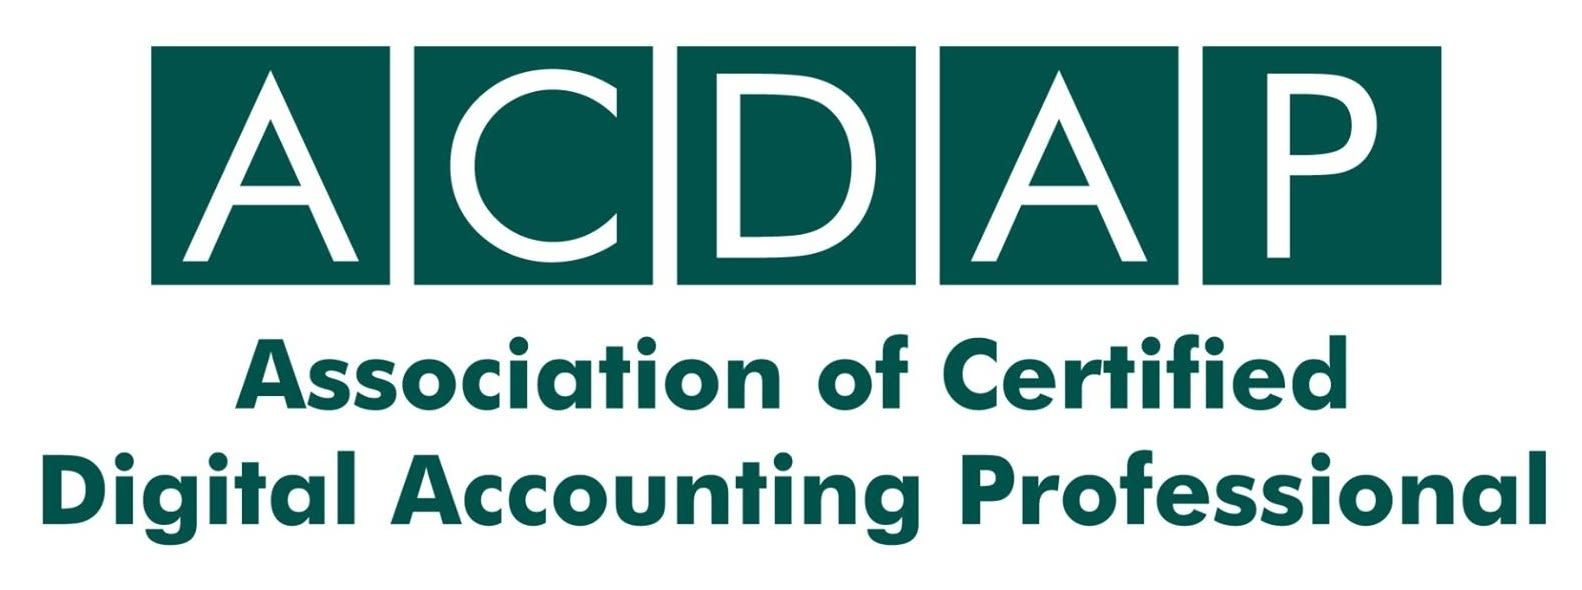 Association of Certified Digital Accounting Professionals - ACDAP